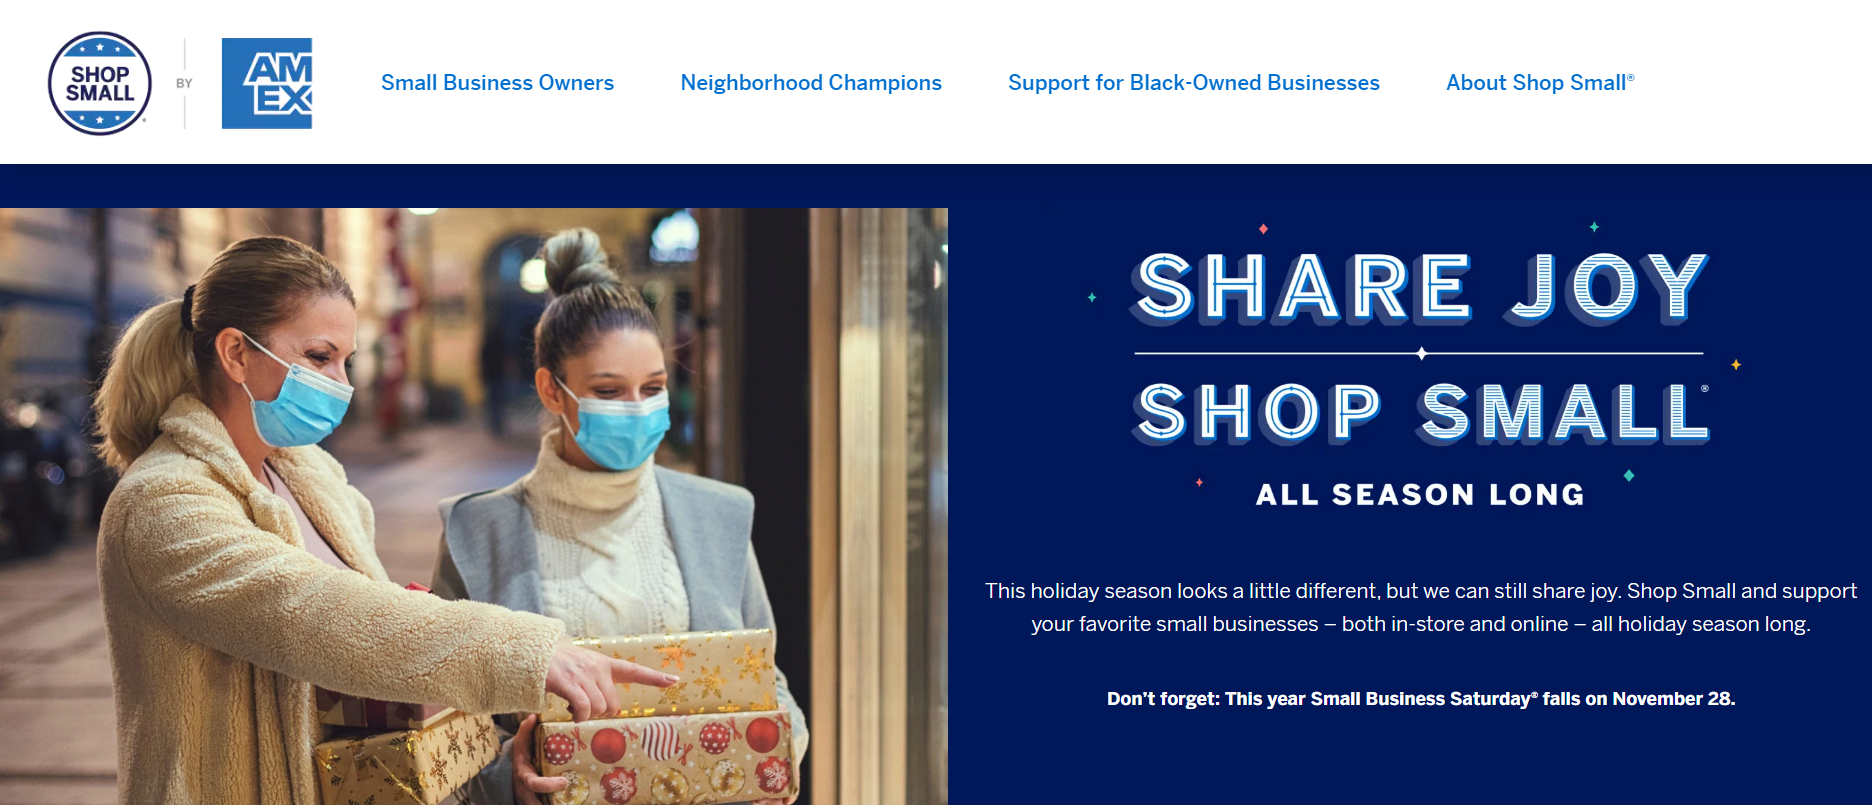 Image of American Express Shop Small landing page.